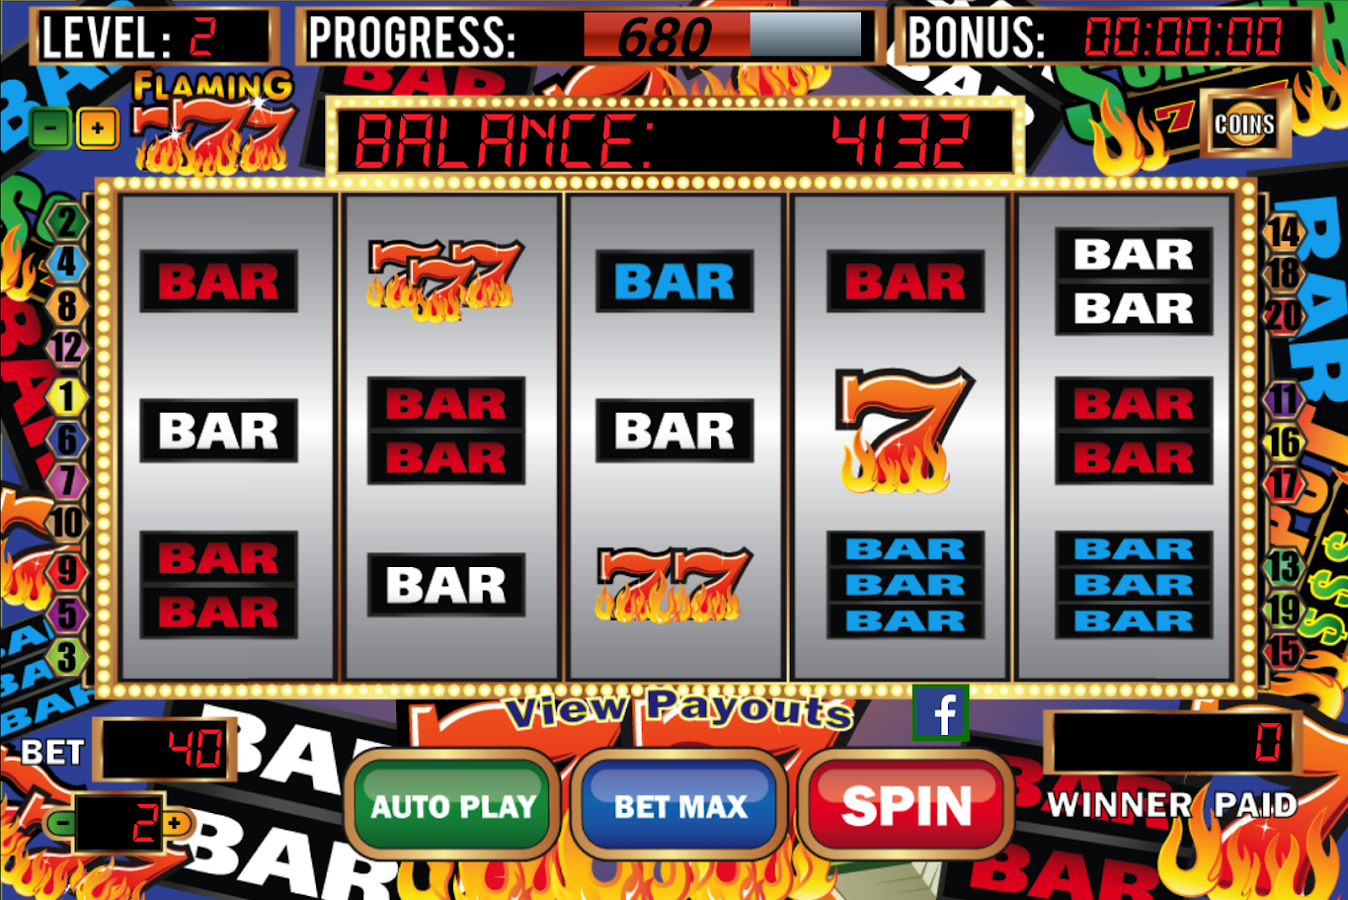 Diamond Monkey - Play Free Online Slots - Legal Online Casino! OnlineCasino Deutschland